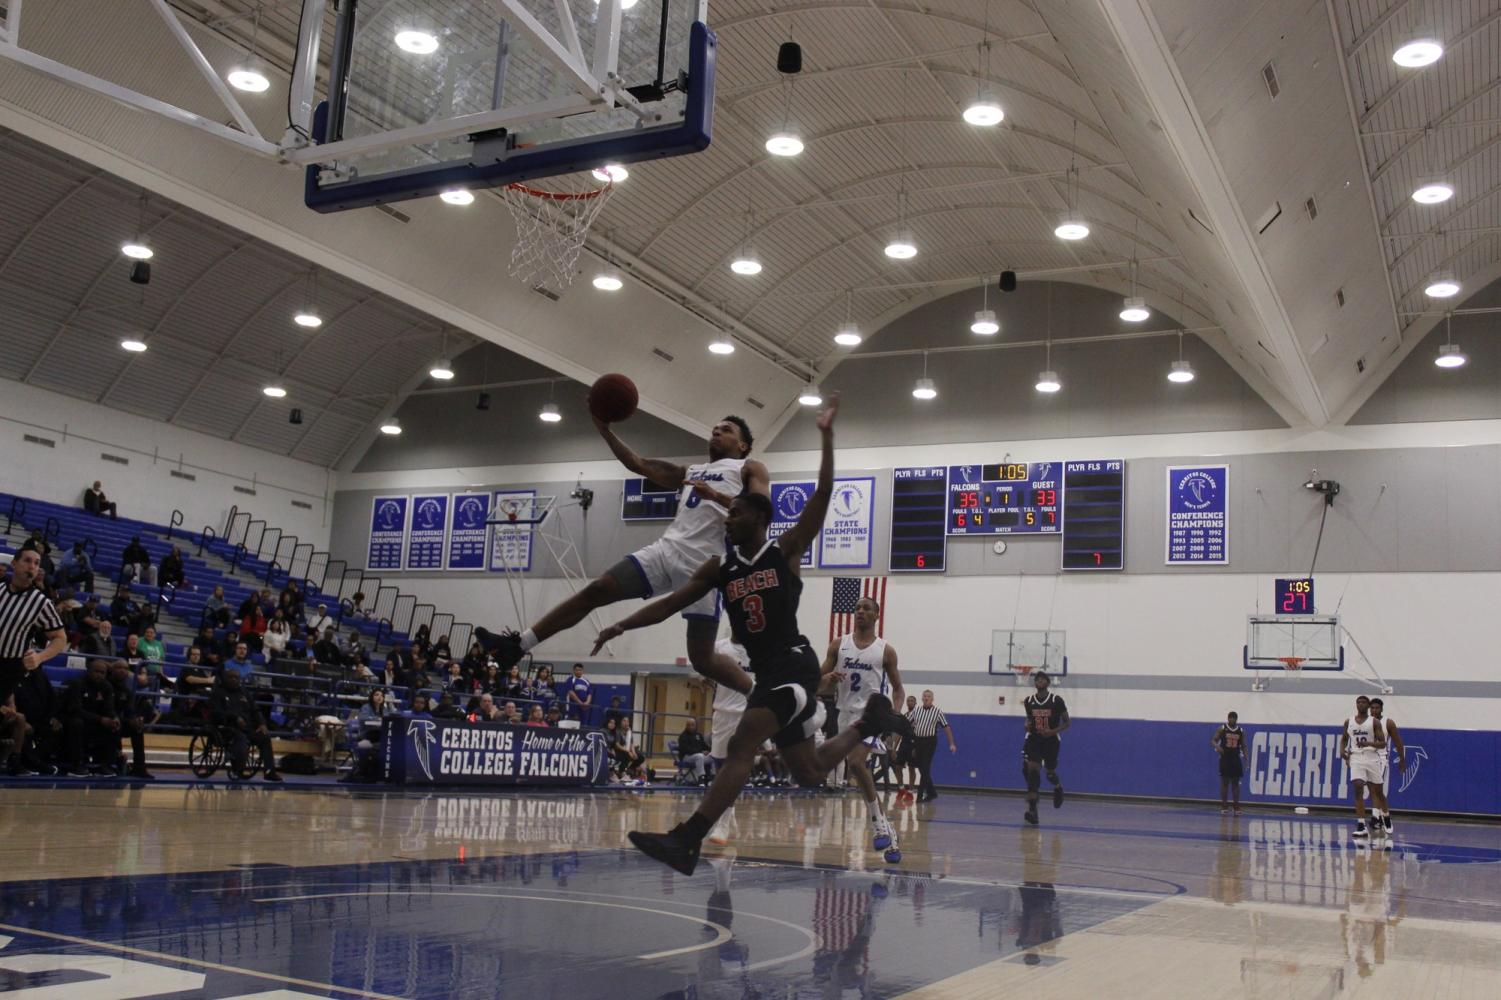 Sophomore guard No. 5 Tawon Elston jumped past the Long Beach City College defender to extend the lead in the first half. Elston finished with 23 points against Long Beach City College at Cerritos College on Feb. 8, 2019. Photo credit: Carlos Ruiz